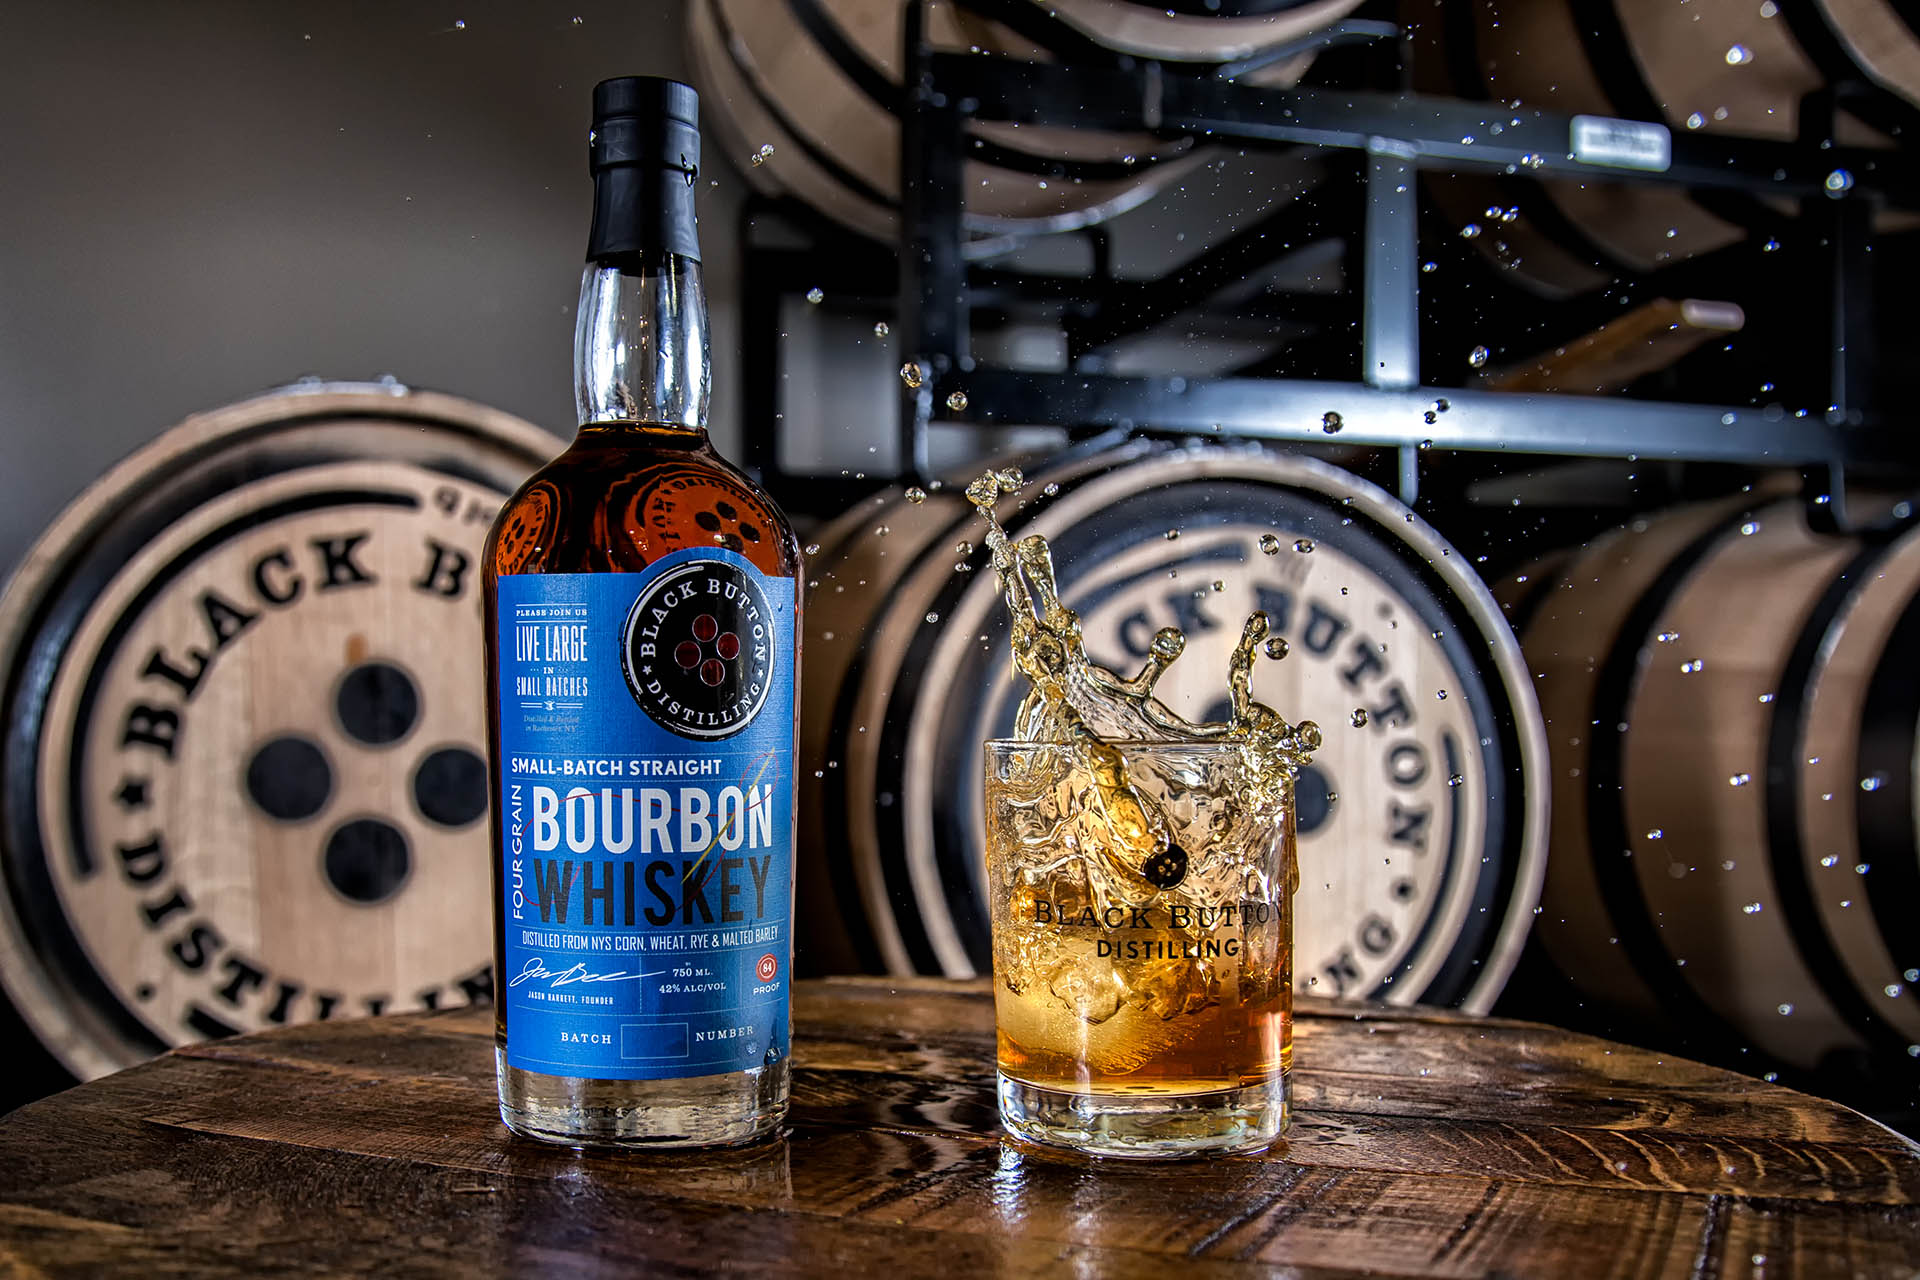 Black Button Distilling's Four Grain Straight Bourbon